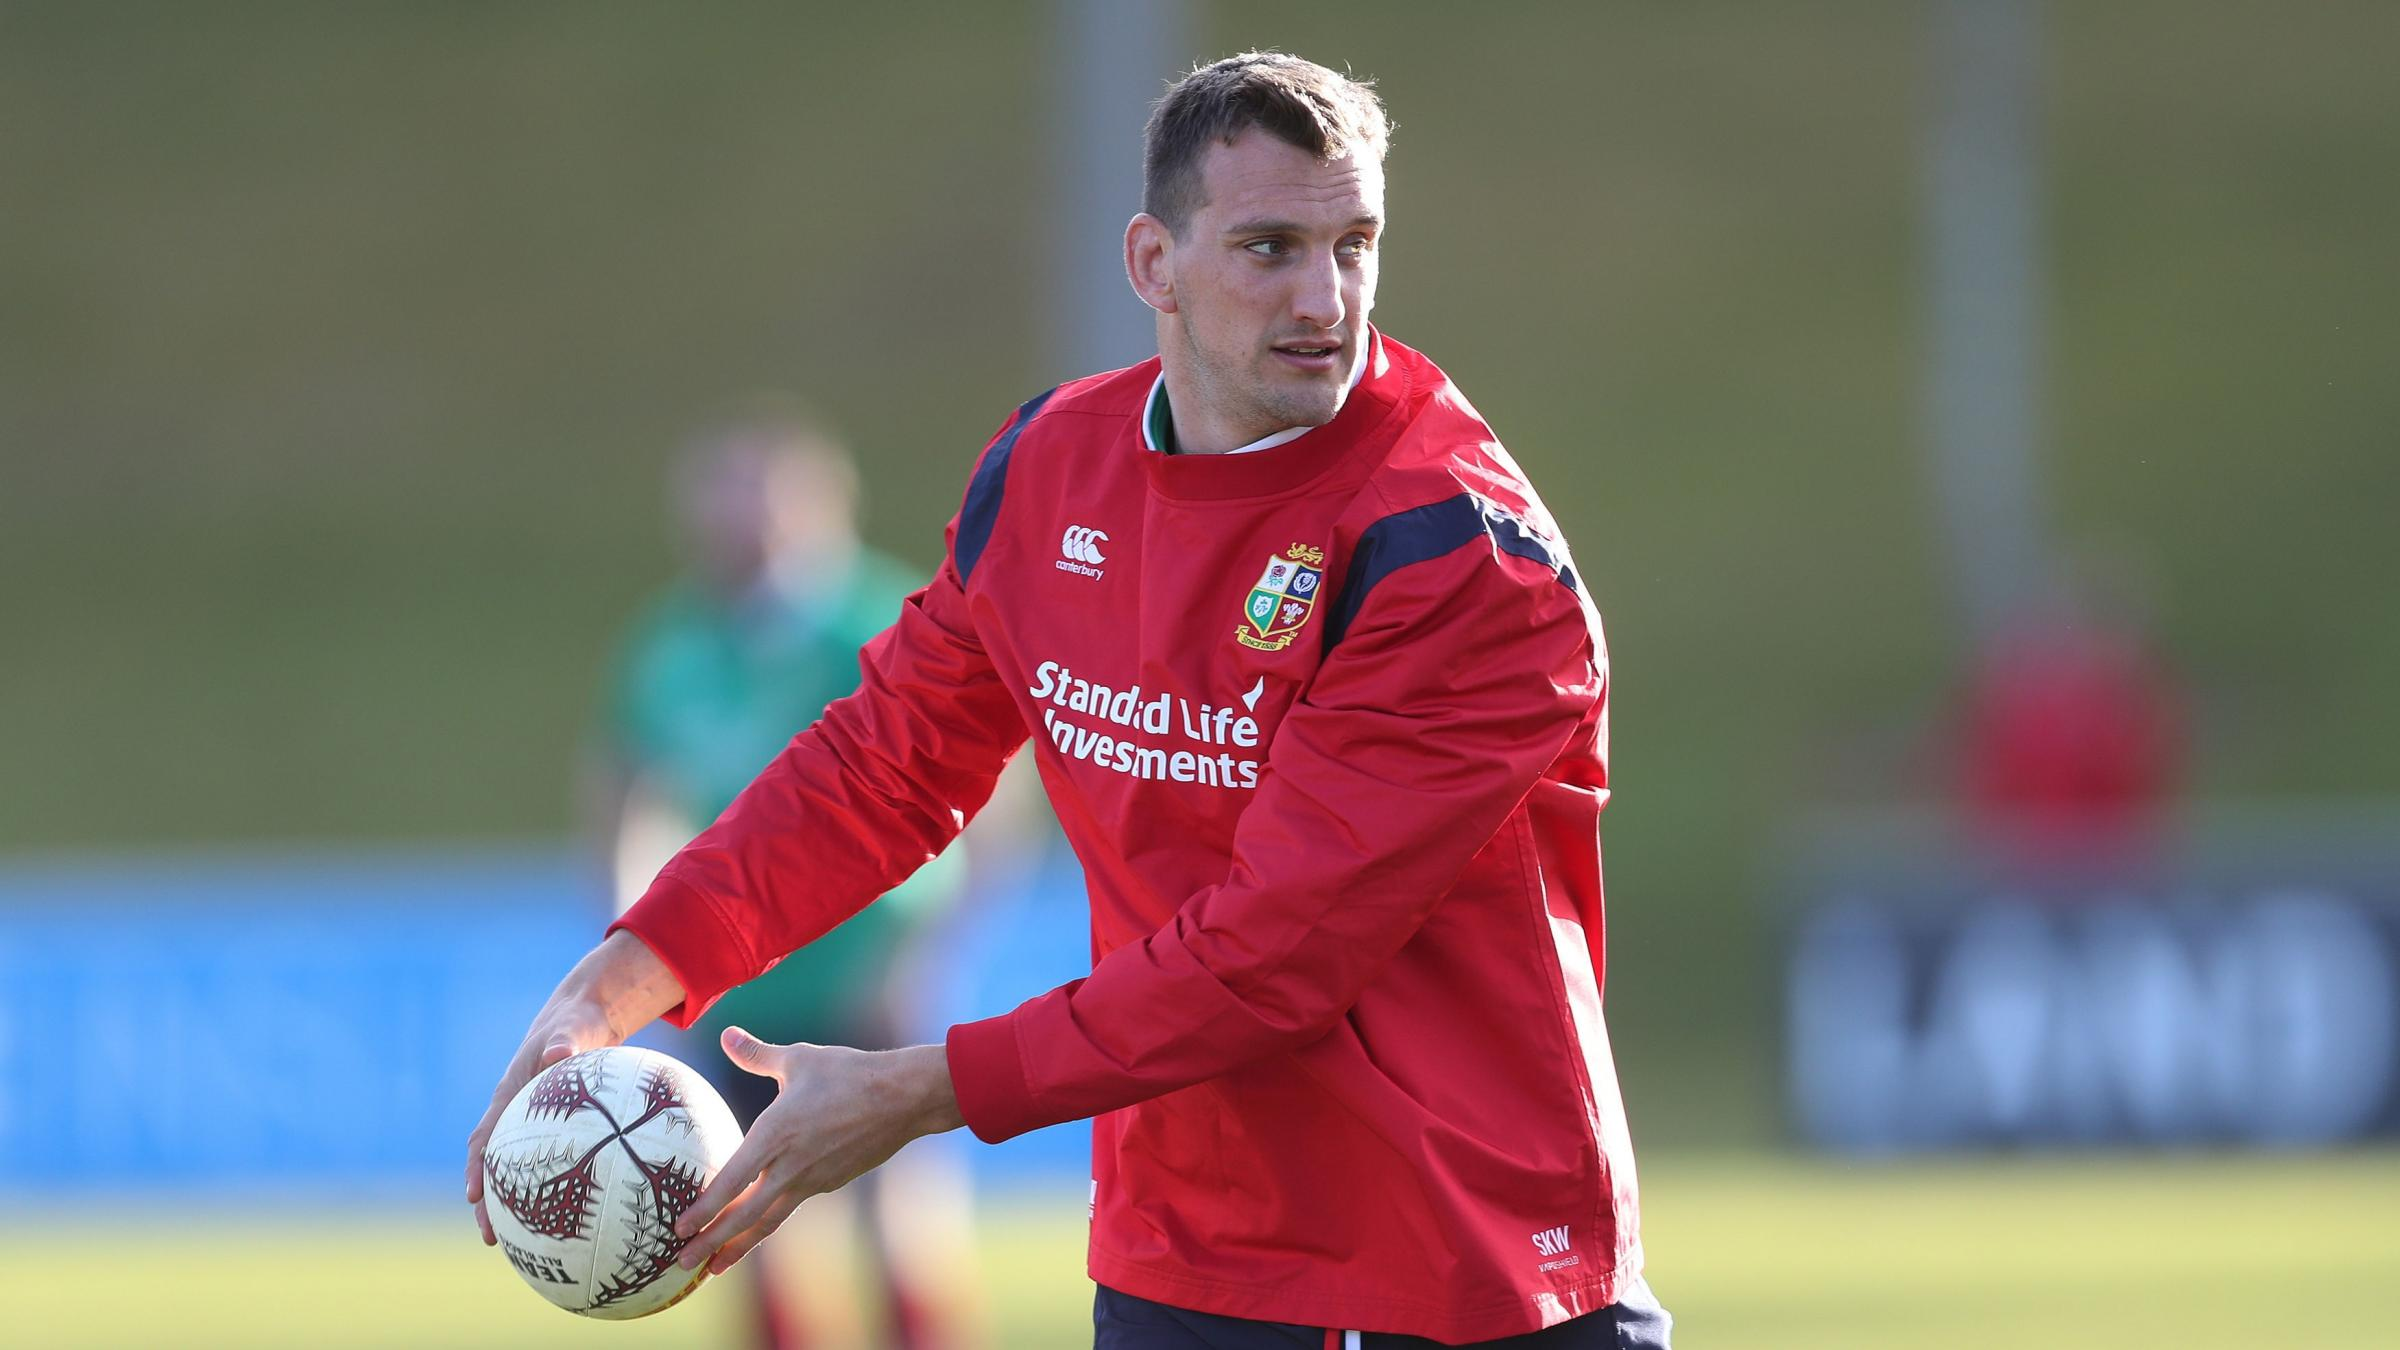 Munster's Peter O'Mahony to skipper Lions against Maoris